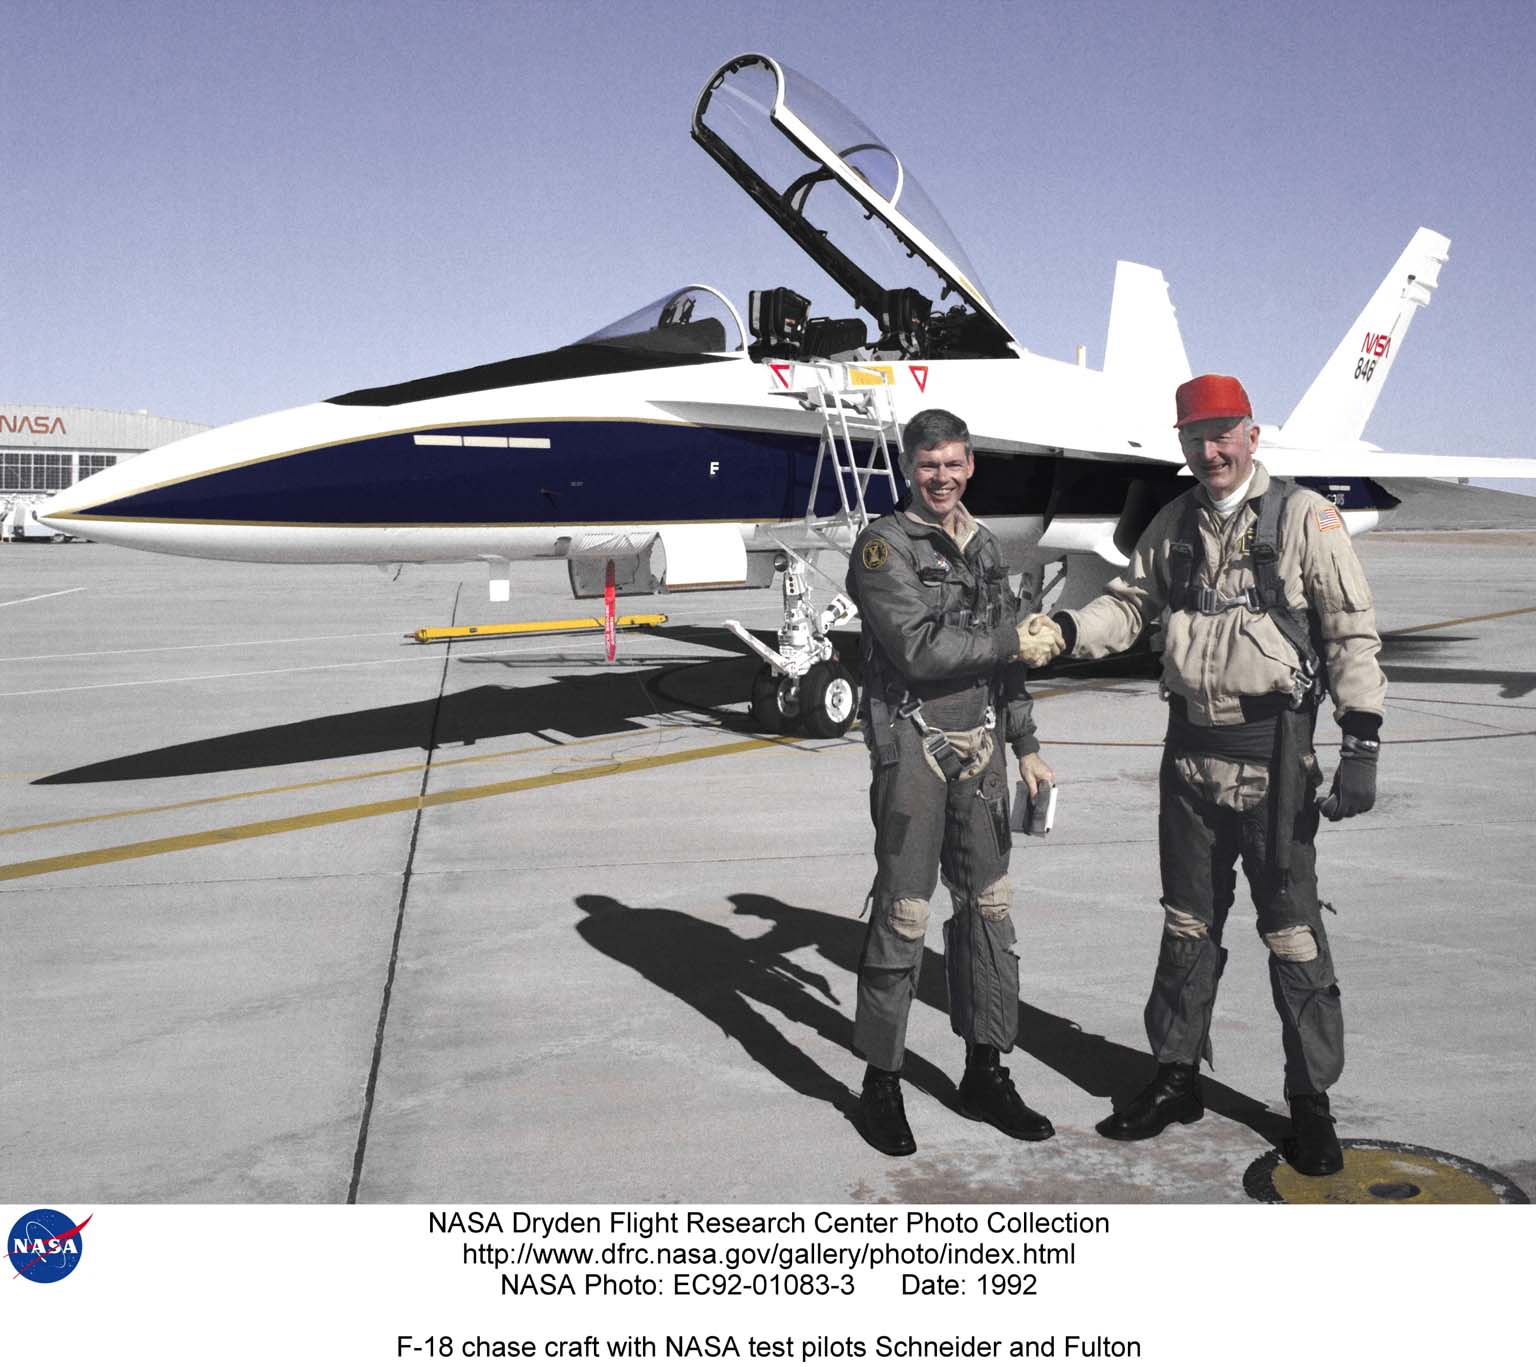 """Ed Schneider, (left), is the project pilot for the F-18 High Angle of Attack program at NASA's Dryden Flight Research Center, Edwards, California. He has been a NASA research pilot at Dryden since 1983. In addition to his assignment with the F-18 High Angle of Attack program, Schneider is a project pilot for the F-15B aeronautical research aircraft, the NASA NB-52B launch aircraft, and the SR-71 """"Blackbird"""" aircraft. He is a Fellow and was the 1994 President of the Society of Experimental Test Pilots. In 1996 he was awarded the NASA Exceptional Service Medal. Schneider is seen here with Fitzhugh L. Fulton Jr., (right), who was a civilian research pilot at Dryden. from August 1, 1966, until July 3, 1986, following 23 years of service as a pilot in the U.S. Air Force. Fulton was the project pilot on all early tests of the 747 Shuttle Carrier Aircraft (SCA) used to air launch the Space Shuttle prototype Enterprise in the Approach and Landing Tests (ALT) at Dryden in l977. For his work in the ALT program, Fulton received NASA's Exceptional Service Medal. He also received the Exceptional Service Medal again in 1983 for flying the 747 SCA during the European tour of the Space Shuttle Enterprise. During his career at Dryden, Fulton was project pilot on NASA's NB-52B launch aircraft used to air launch a variety of piloted and unpiloted research aircraft, including the X-15s and lifting bodies. He flew the XB-70 prototype supersonic bomber on both NASA-USAF tests and NASA research flights during the late 1960s, attaining speeds exceeding Mach 3. He was also a project pilot on the YF-12A and YF-12C research program from April 14, 1969, until September 25, 1978. The F/A-18 Hornet seen behind them is used primarily as a safety chase and support aircraft at NASA's Dryden Flight Research Center, Edwards, Calif. As support aircraft, the F-18's are used for safety chase, pilot proficiency and aerial photography. As a safety chase aircraft, F-18's, flown by research pilots, accompan"""